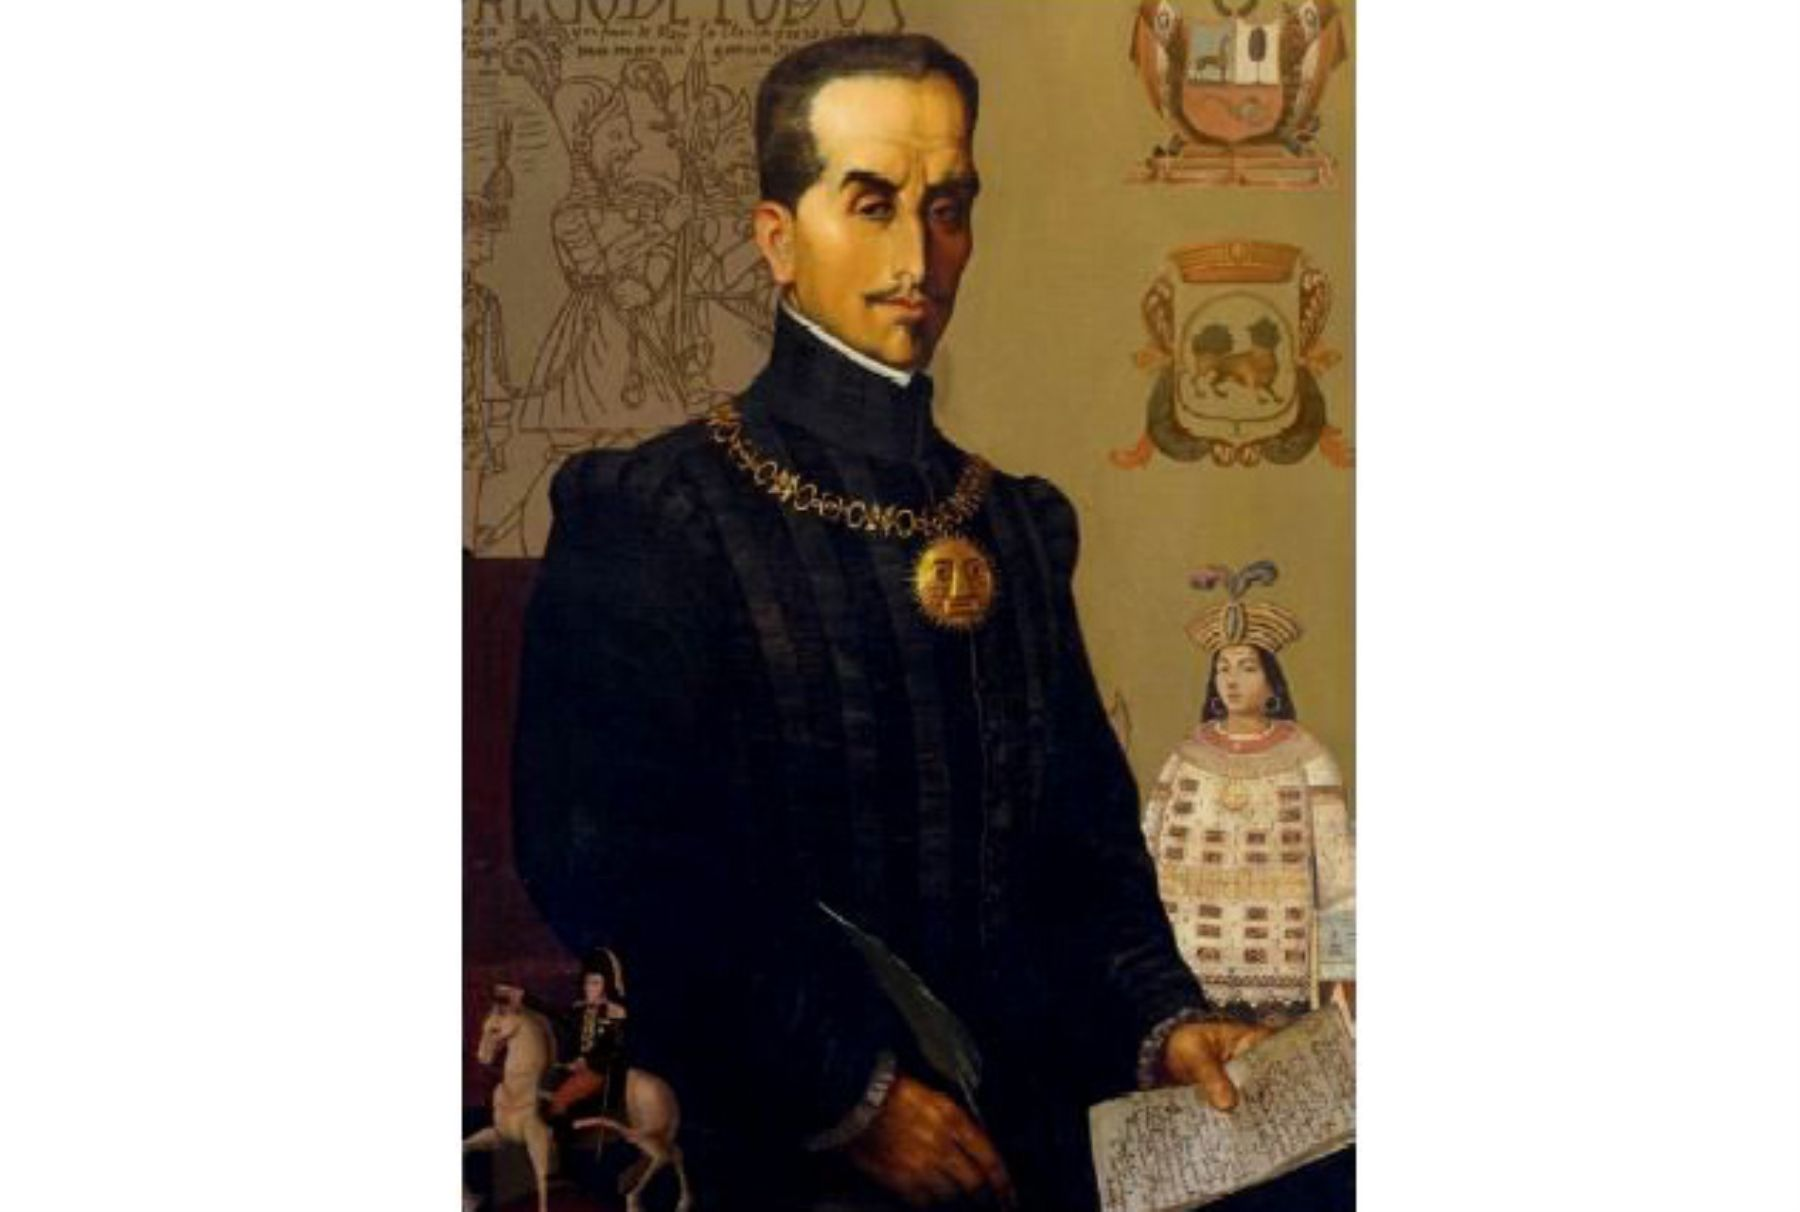 inca garcilaso de la vega essay Sixteenth-century historian garcilaso inca de la vega had a unique view of   together, all the essays demonstrate that garcilaso scholarship continues to be.